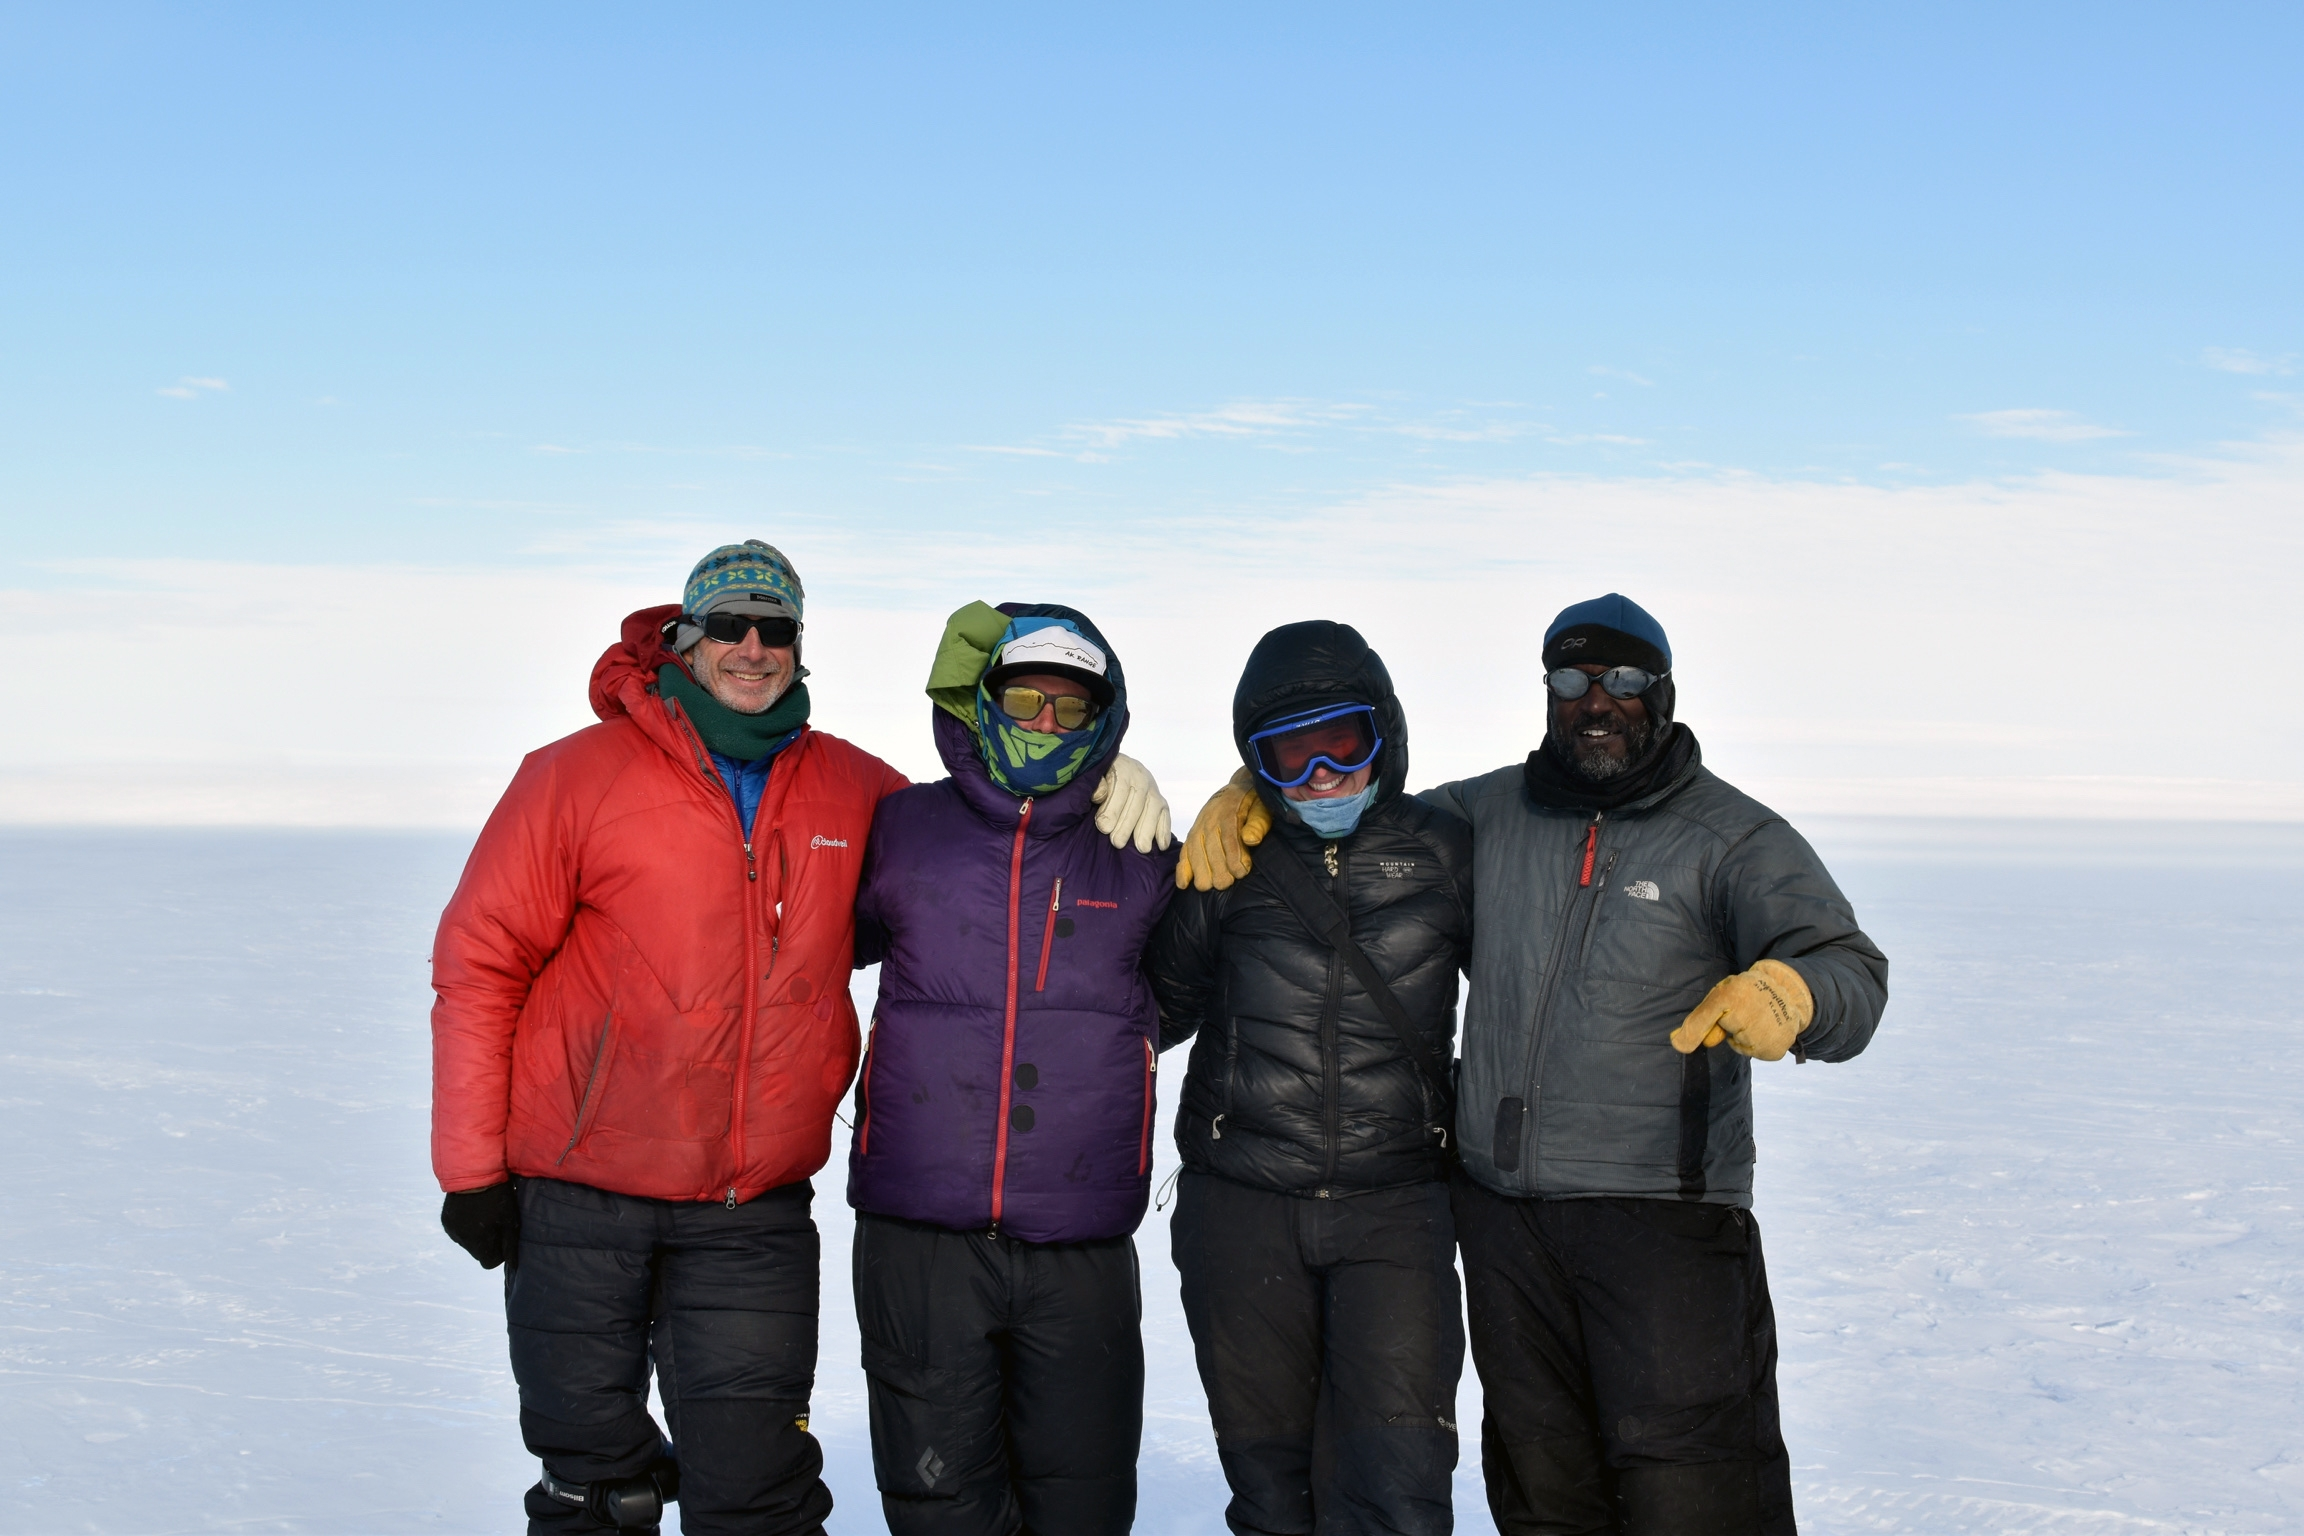 A group of four people pose in cold weather gear. Behind them is a white, icy horizon.